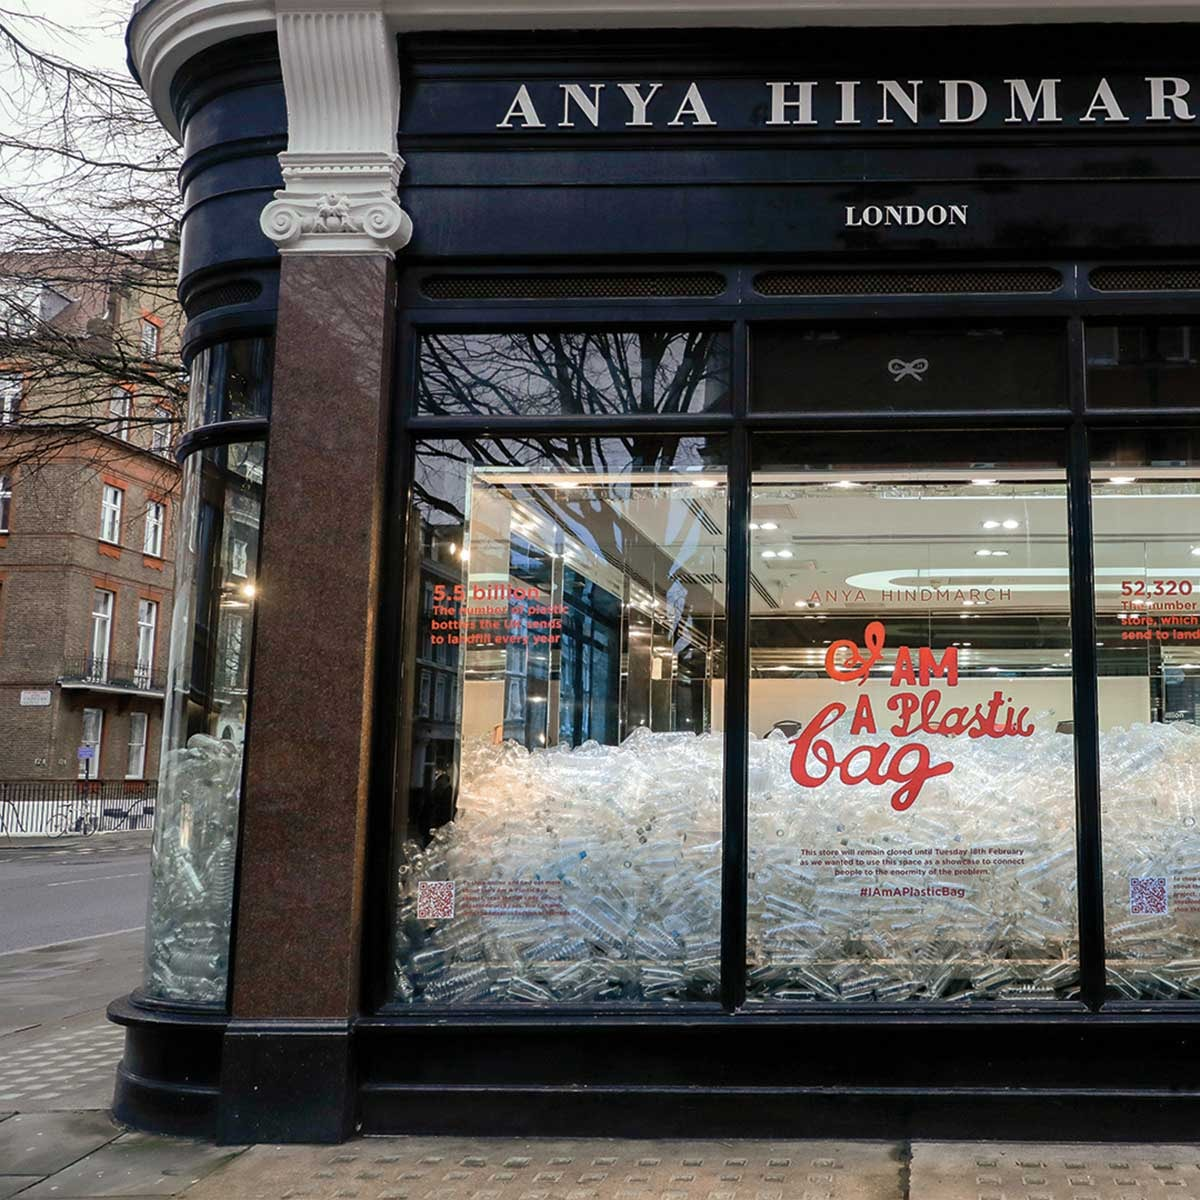 Anya Hindmarch launches 'I Am A Plastic Bag' during LFW